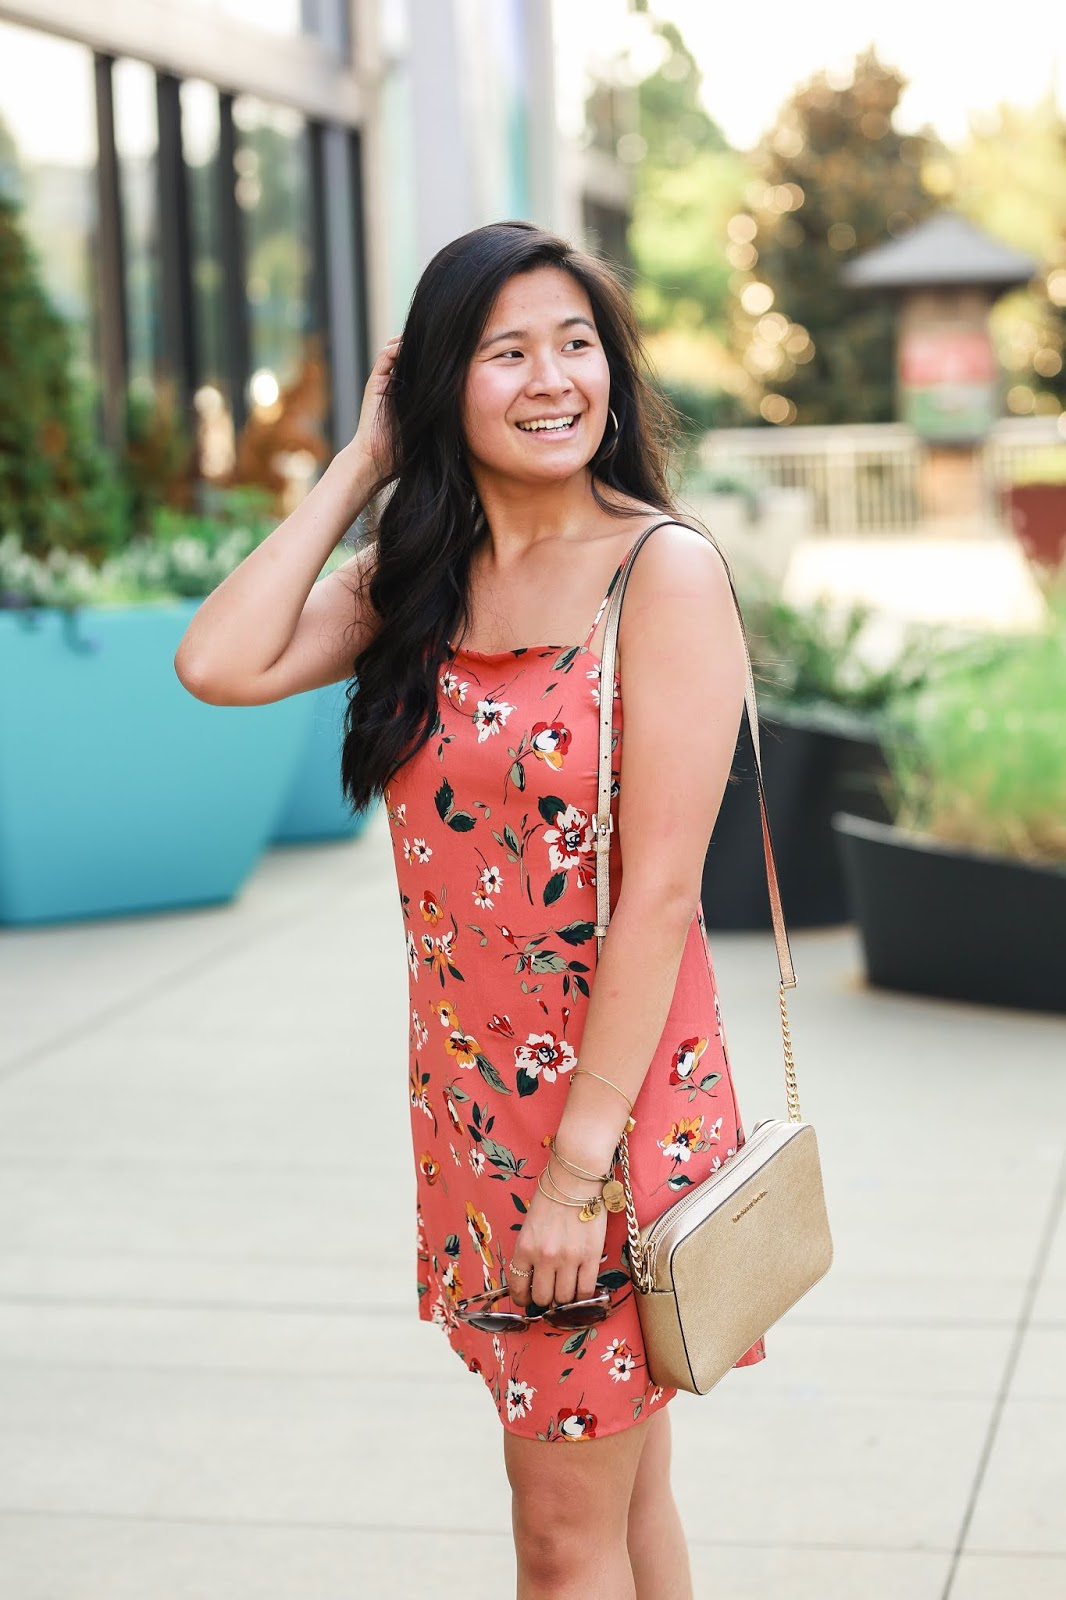 How to transition your summer dress to fall | Orange floral dress | Affordable outfit idea